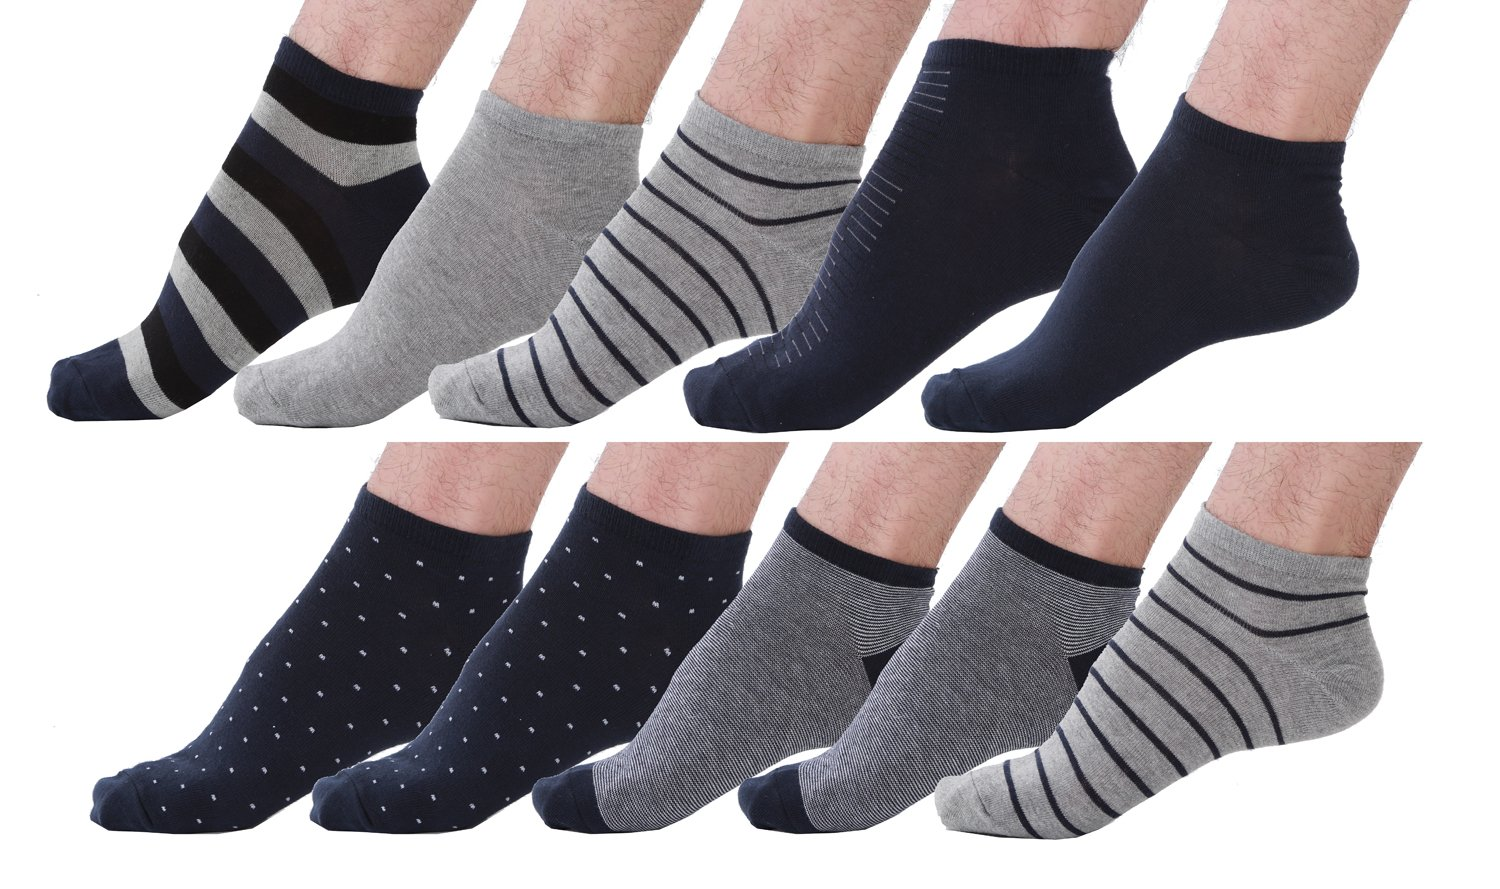 10 Pair Men's Cotton Sneaker No Show Summer Socks-L/XL